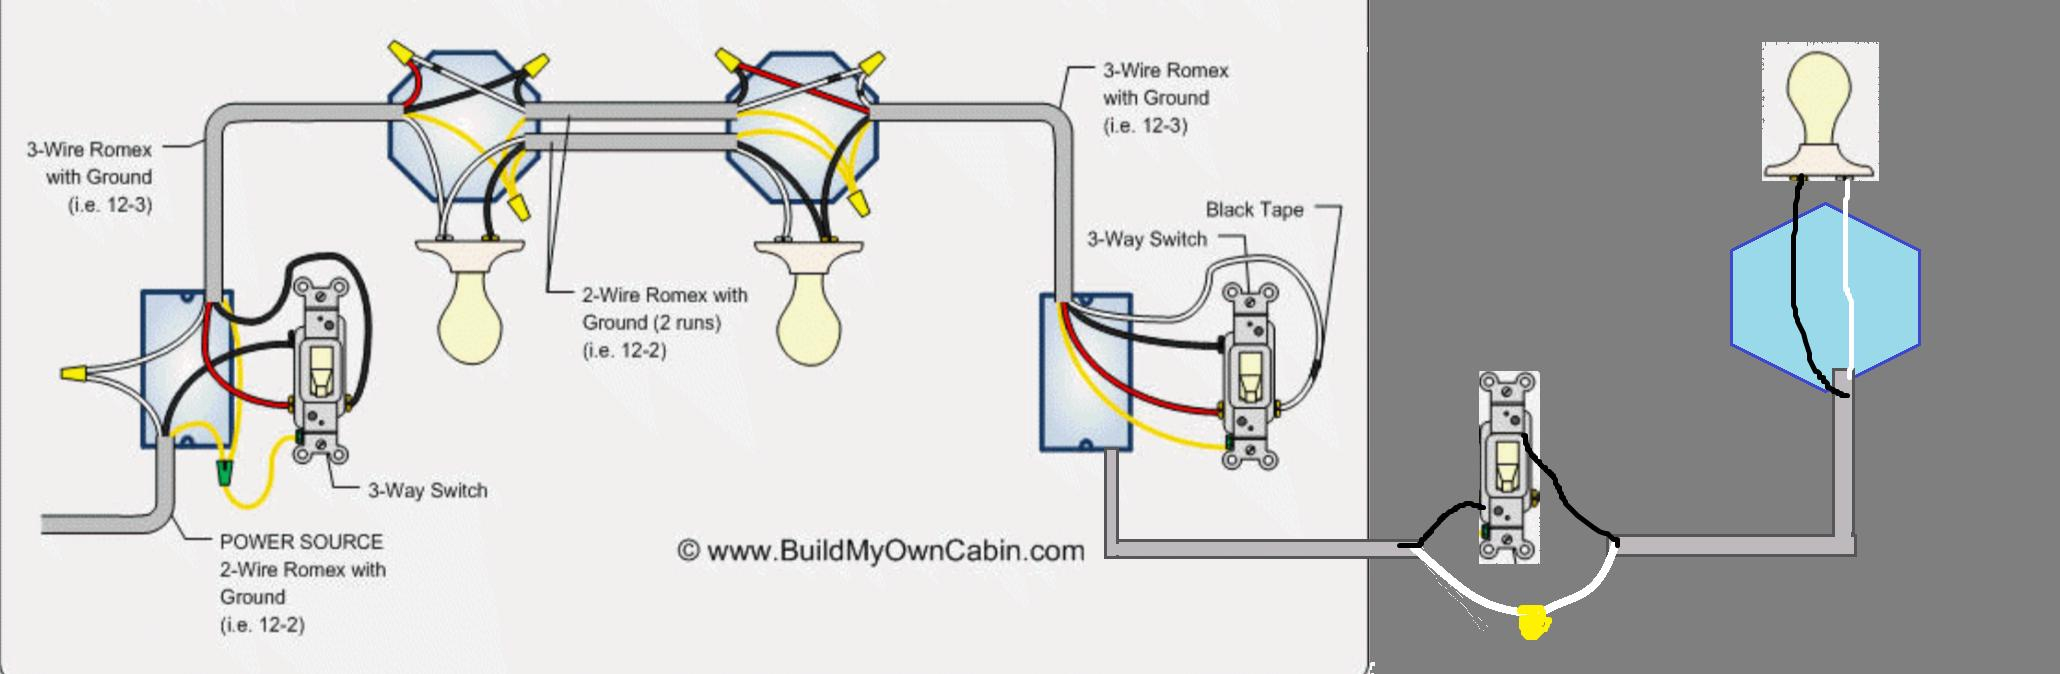 Wiring - Going From 3 Way Switch To A Regular Switch - Home - Three Way Switch Wiring Diagram